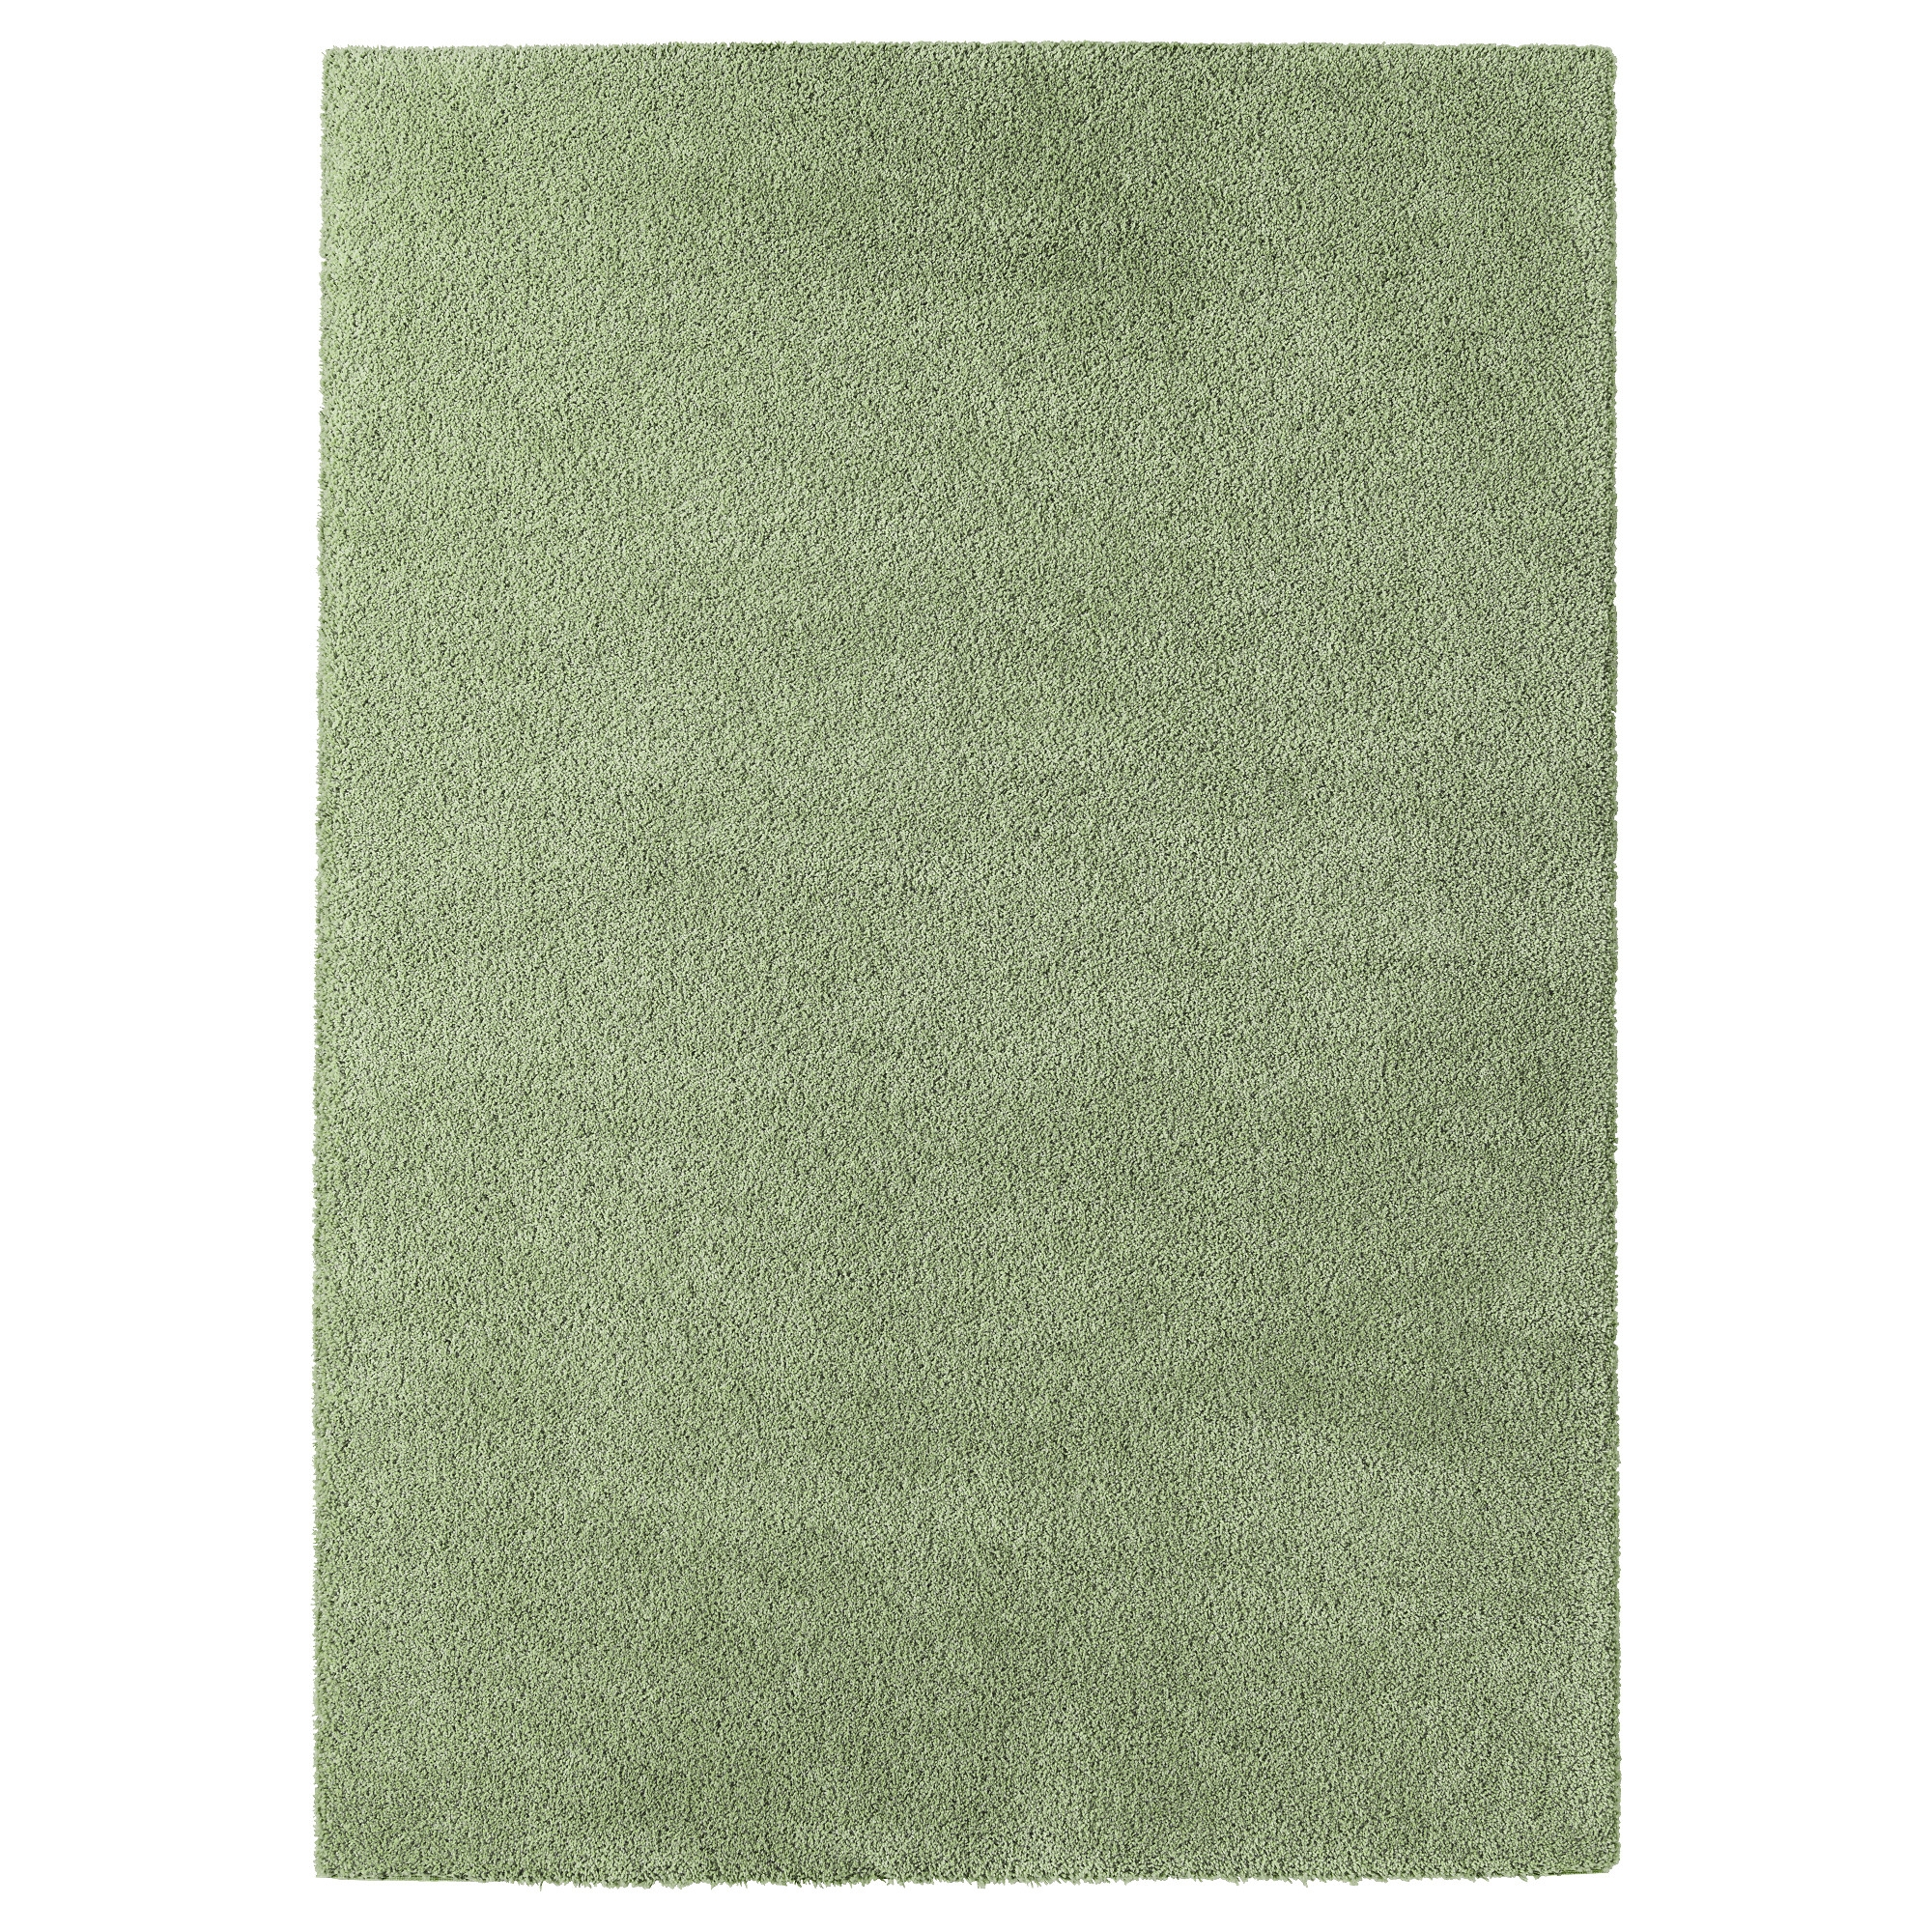 Flooring Stunning Sisal Rug Ikea For Cozy Your Home Flooring For Hallway Runners Green (#7 of 20)